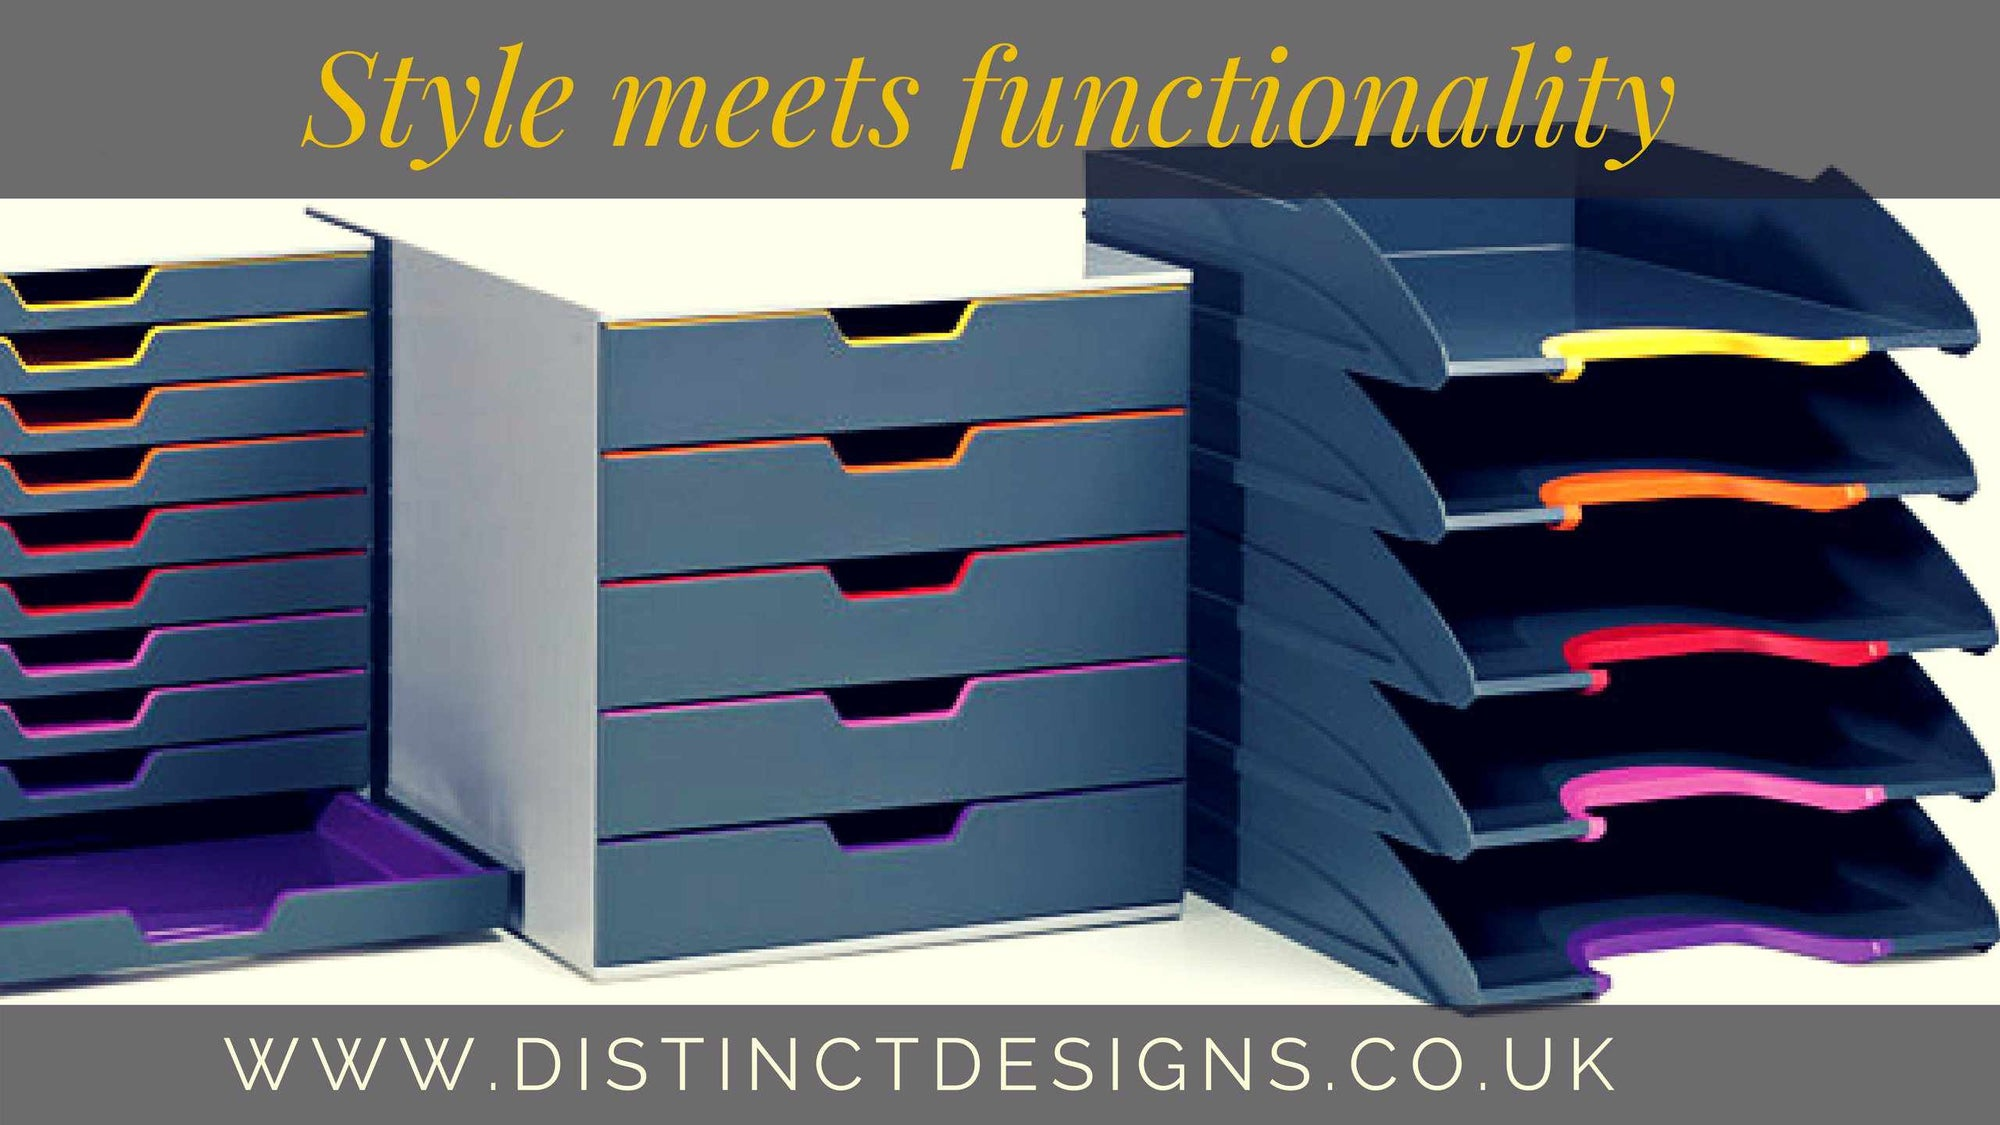 Distinct Desings Organisation Products - Style meets functionality